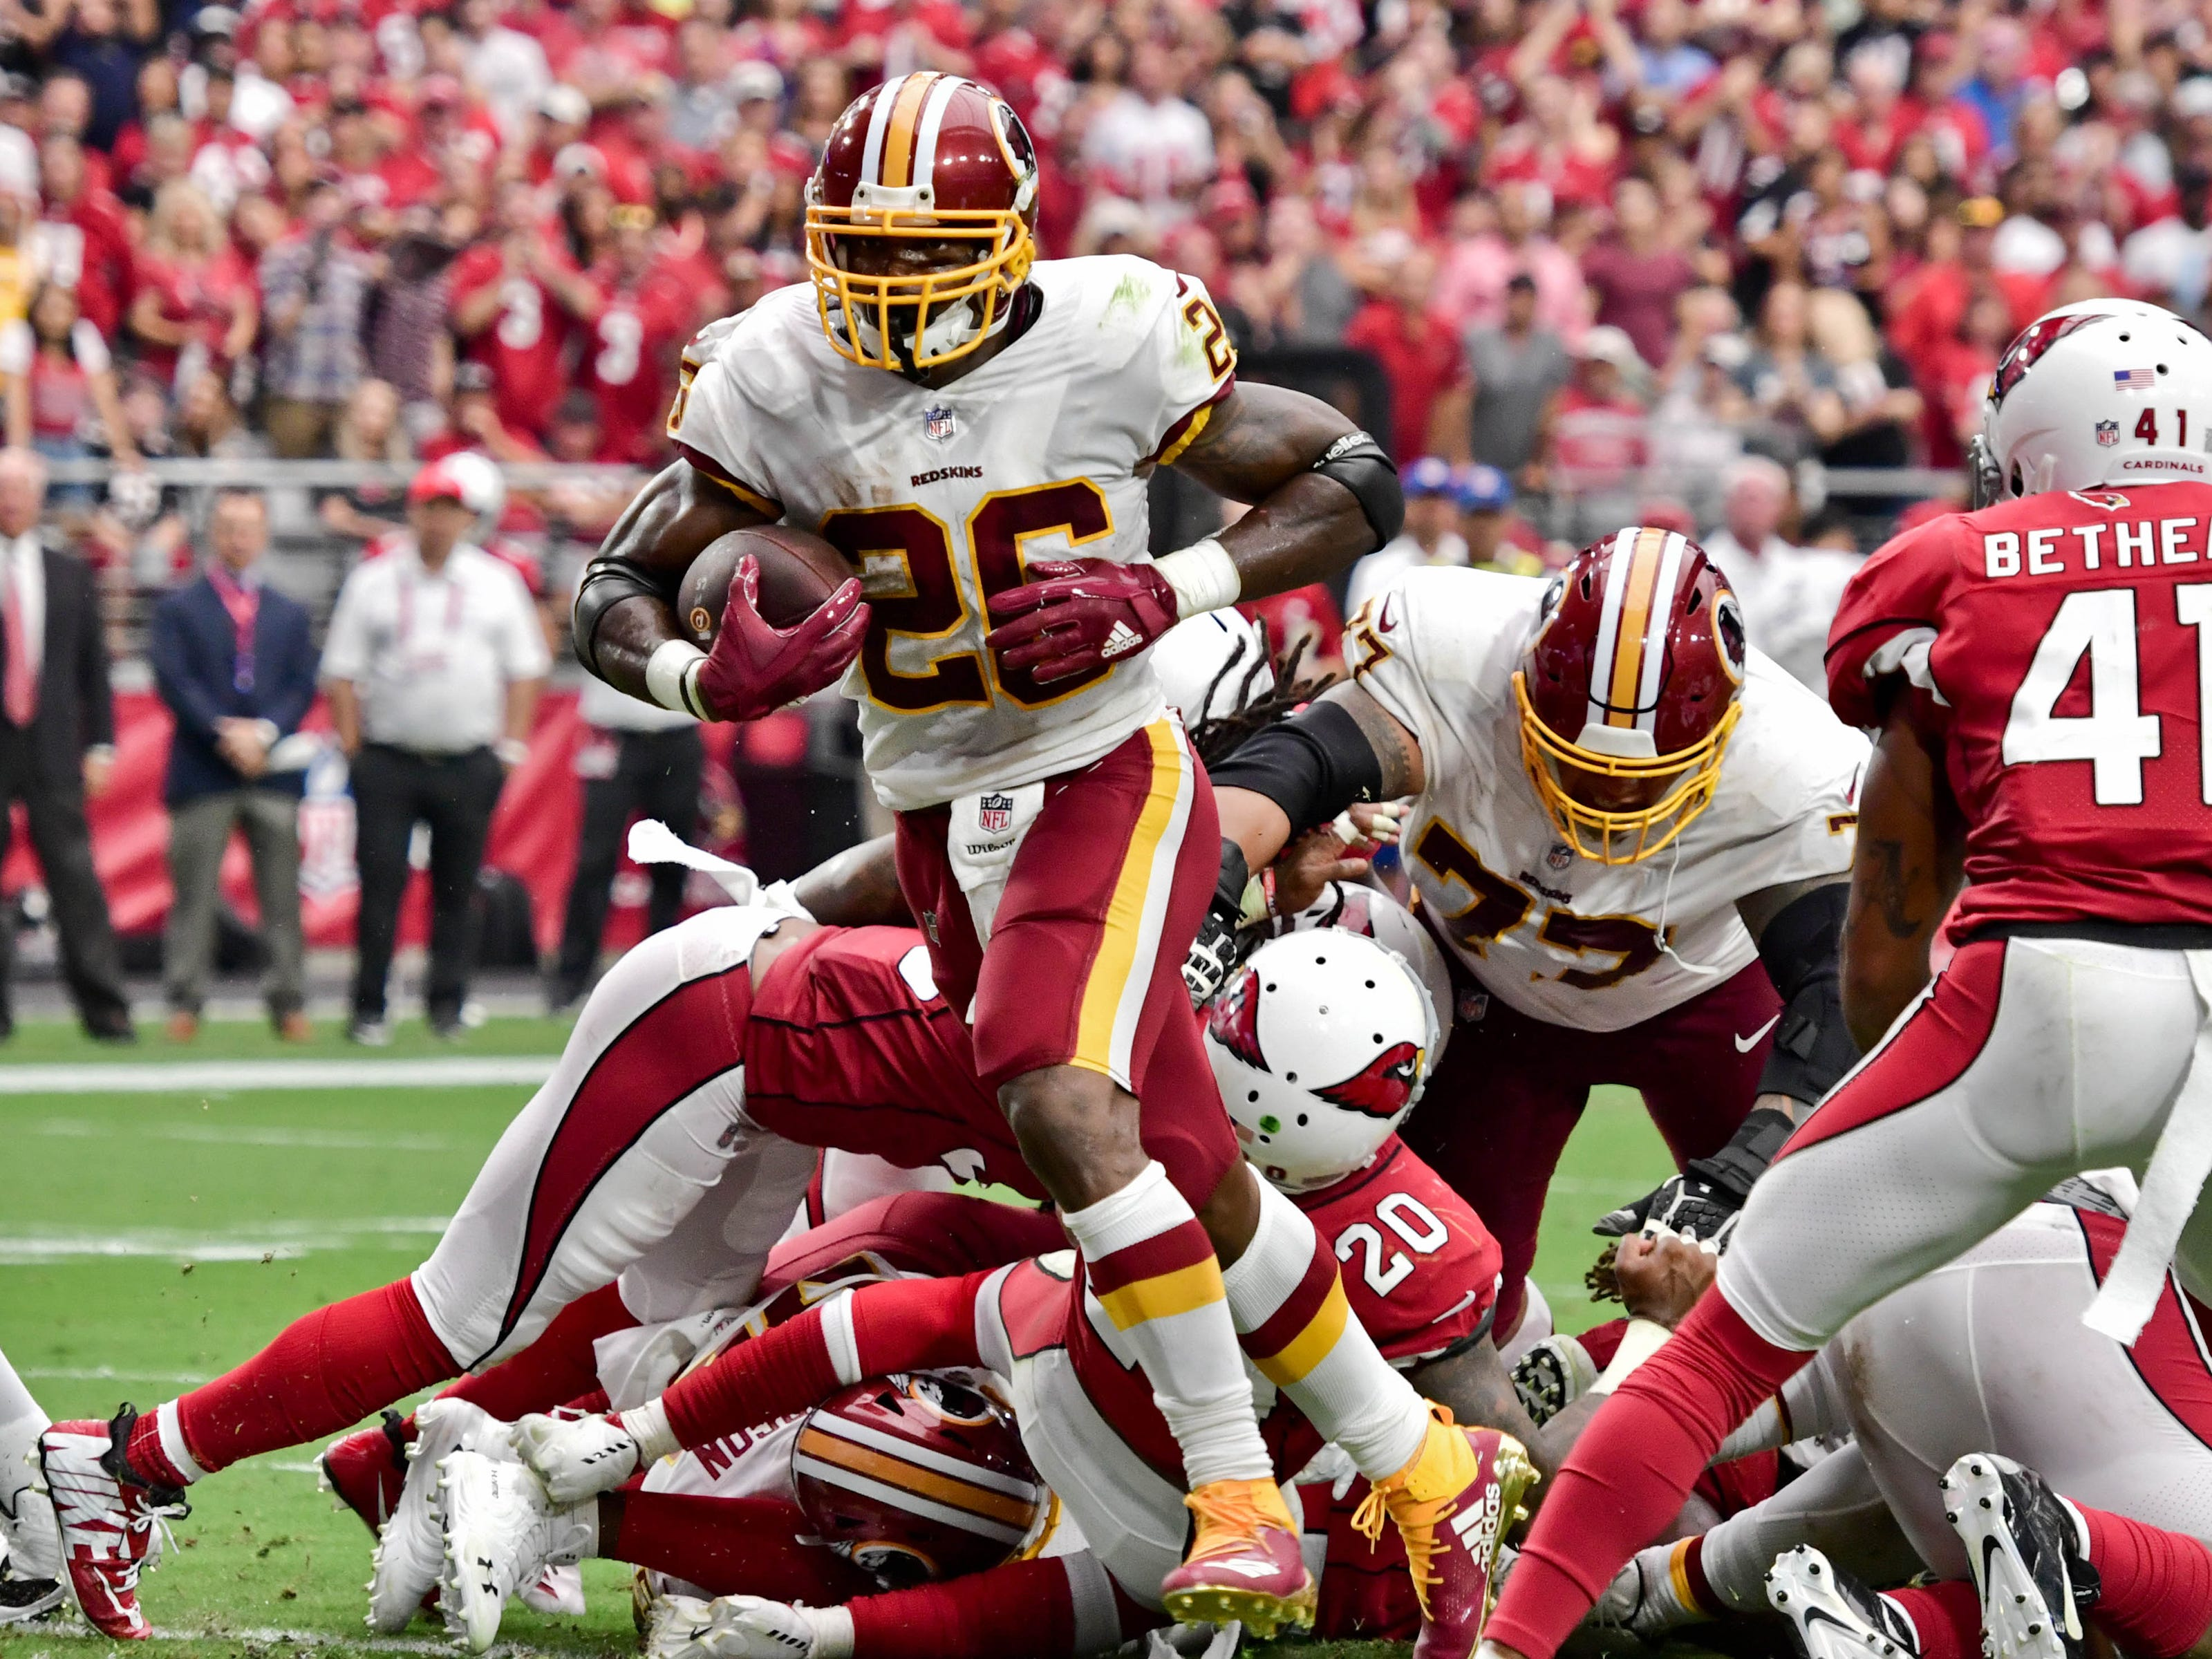 8. Redskins (12): Newbies Adrian Peterson, Alex Smith getting lots of pub. But don't sleep on ascendant defense that took jackhammer to Arizona's offense.